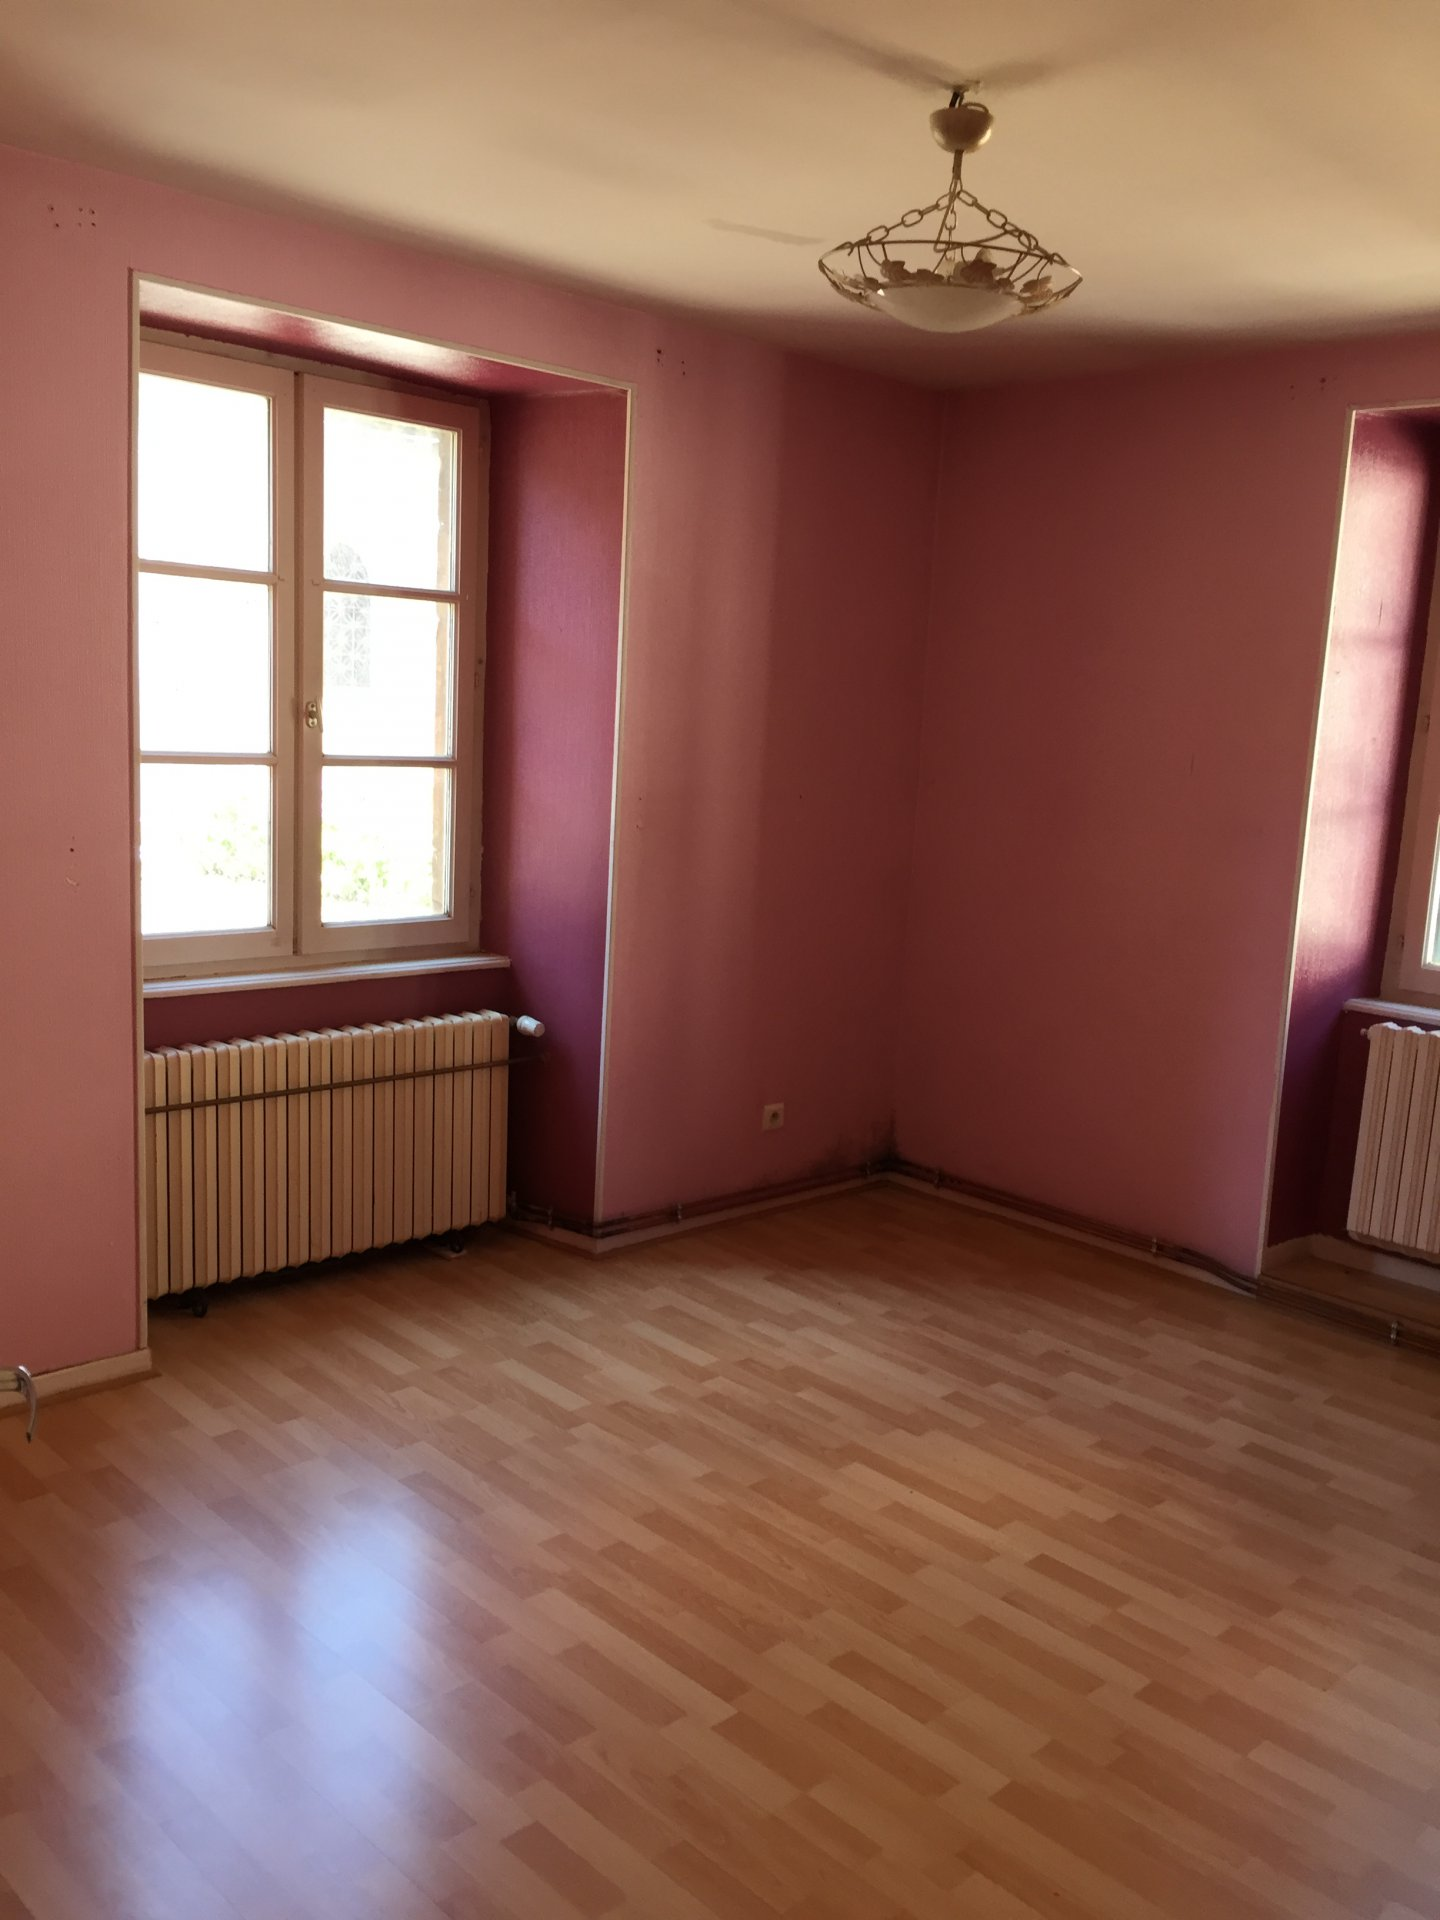 APPARTEMENT DE TYPE F4